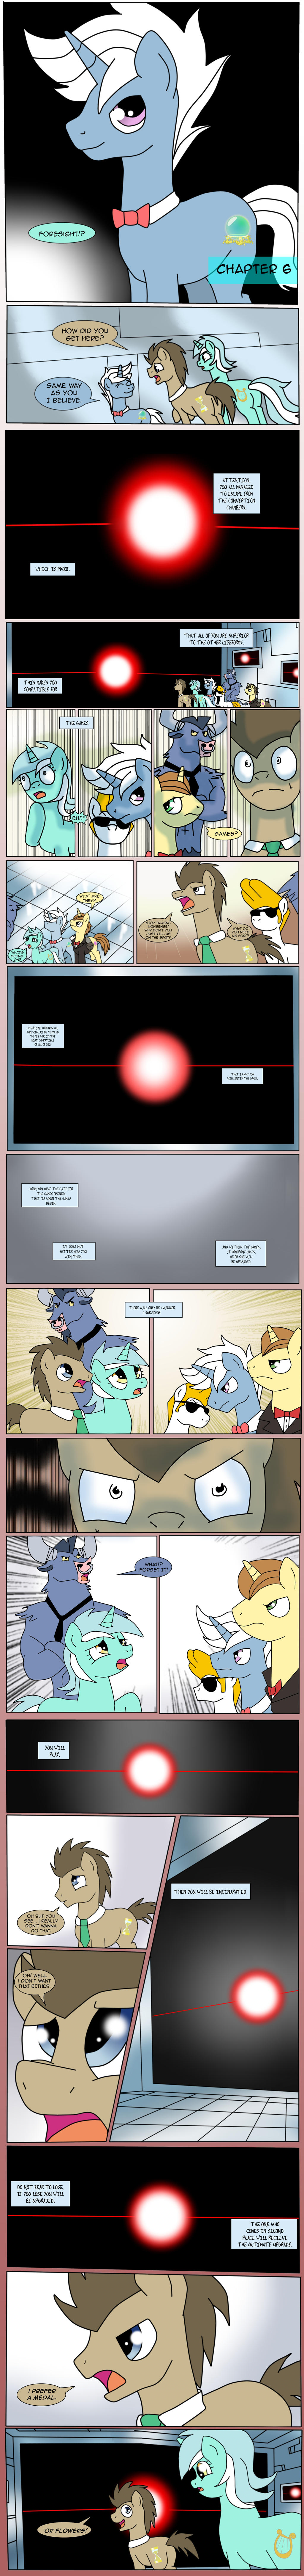 Doctor Whooves - The Games Pt 1